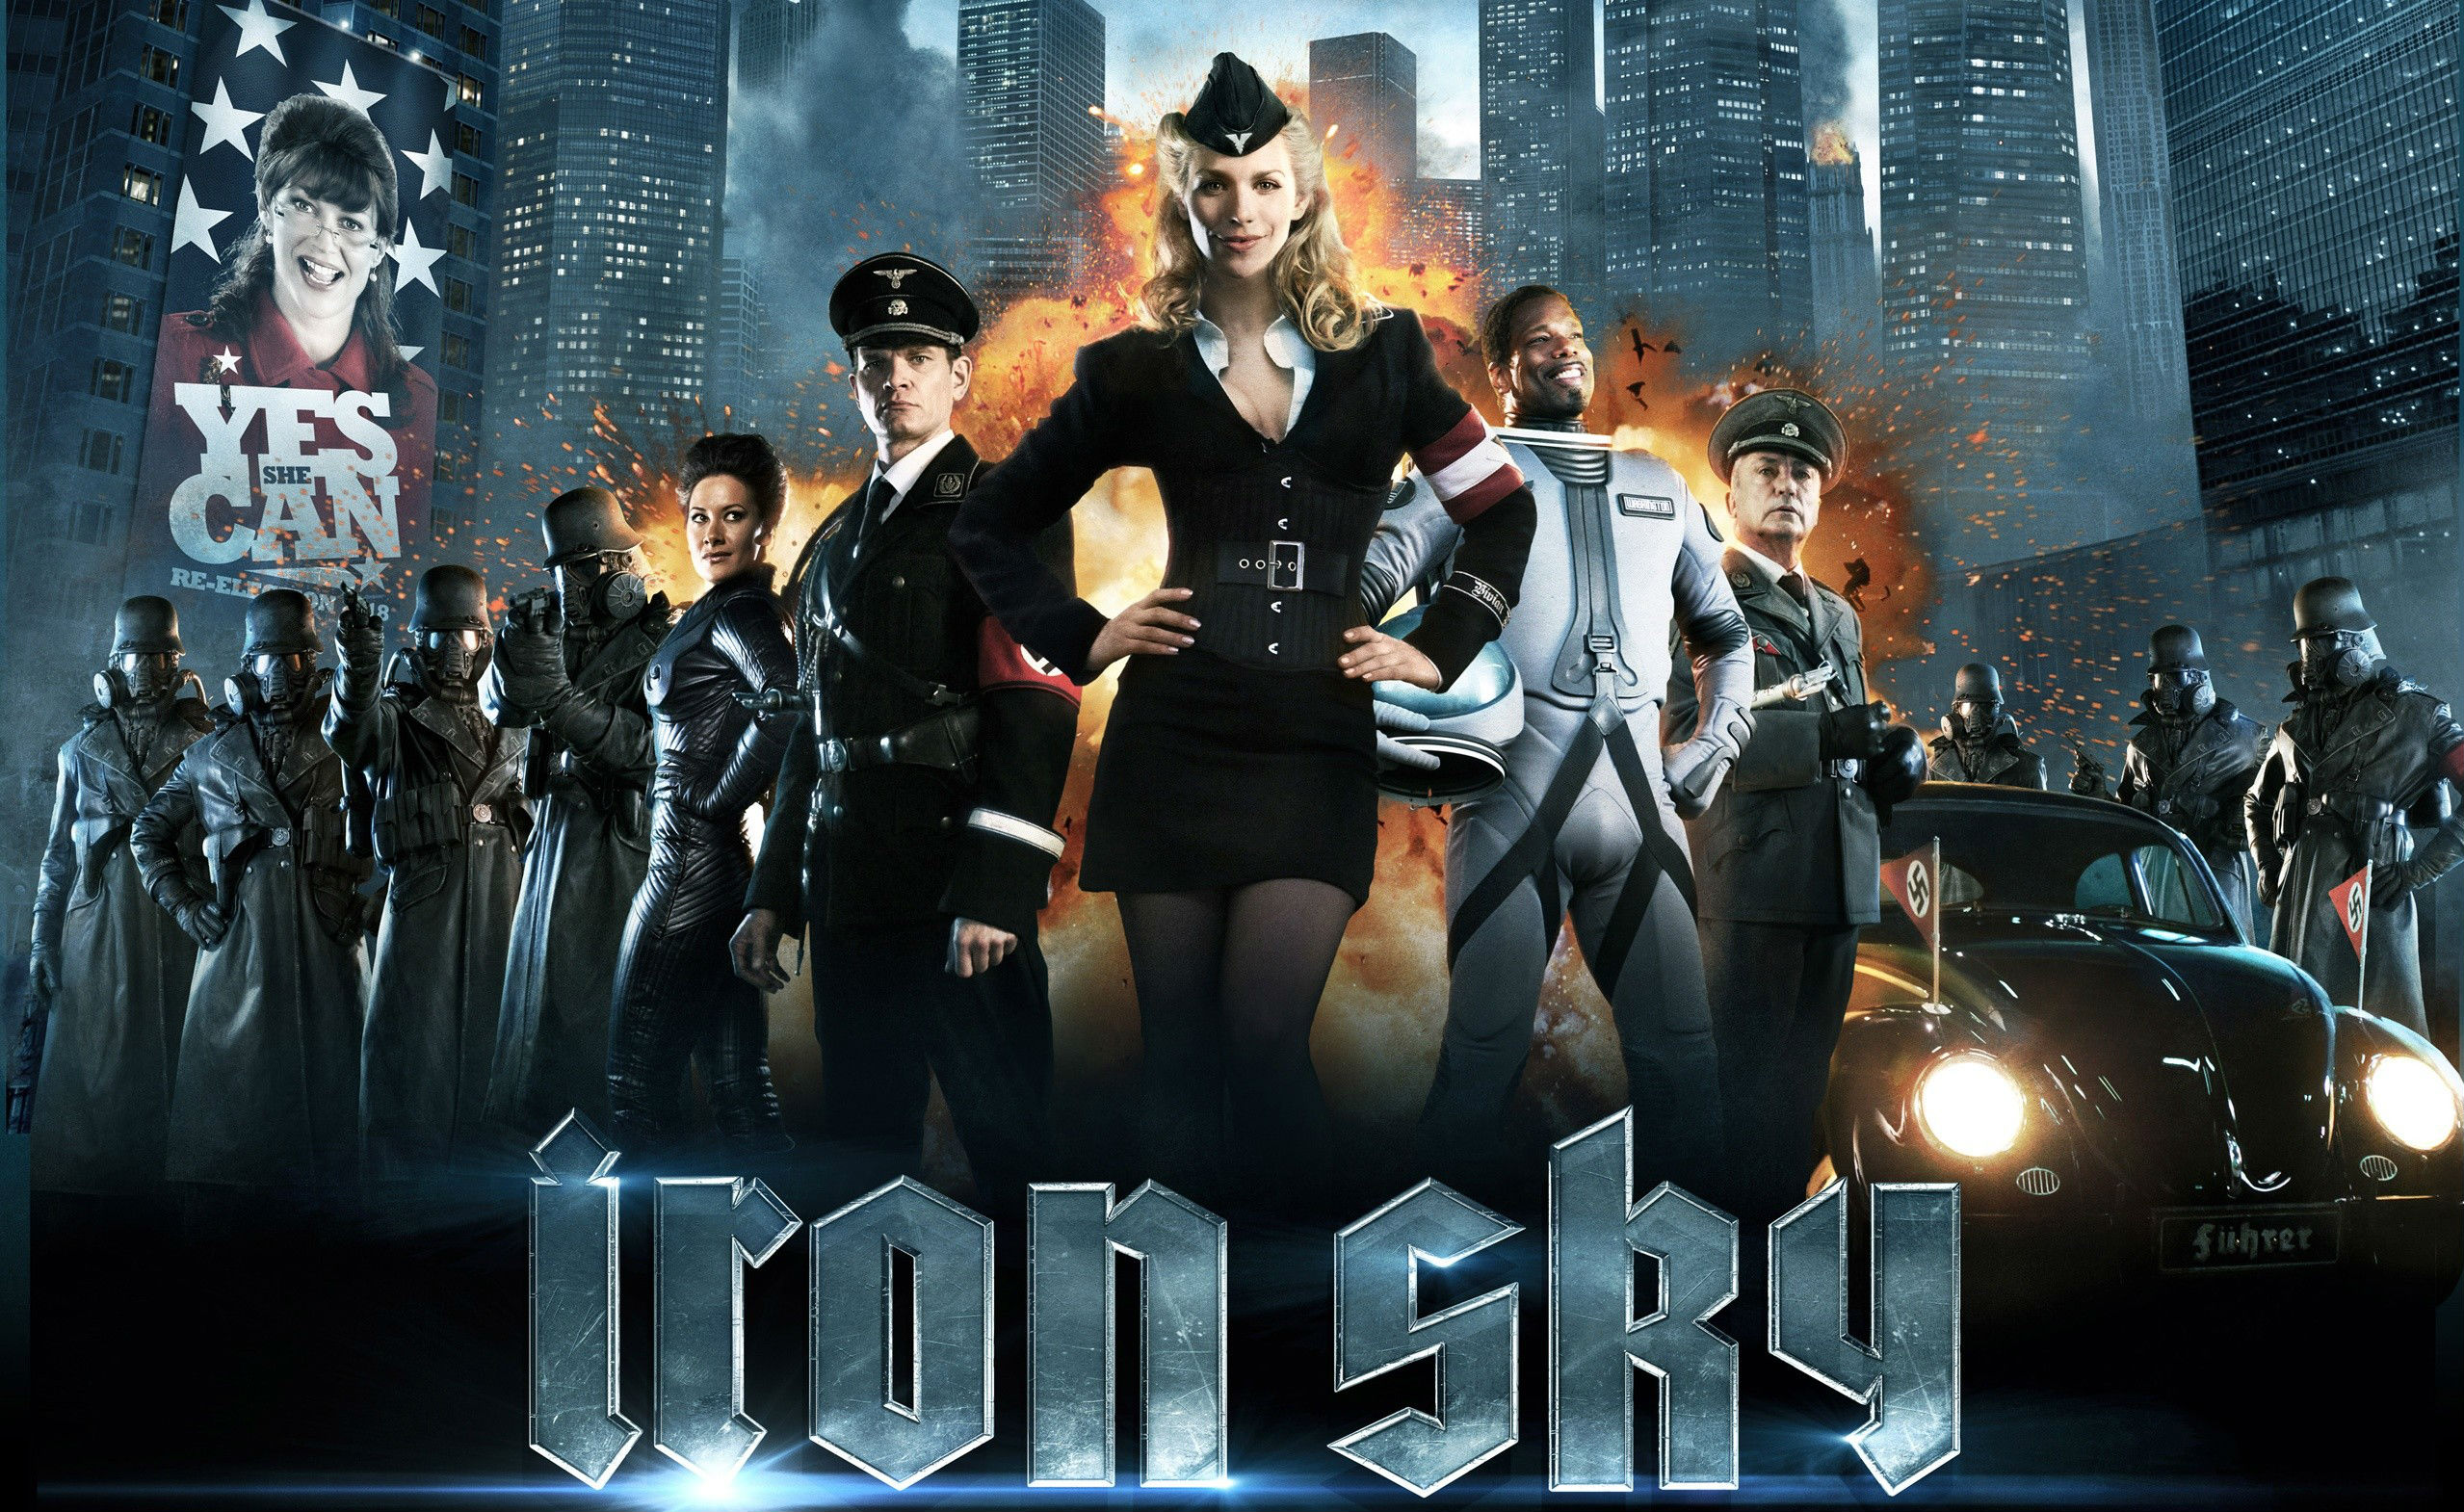 HQ Iron Sky Wallpapers | File 962.71Kb